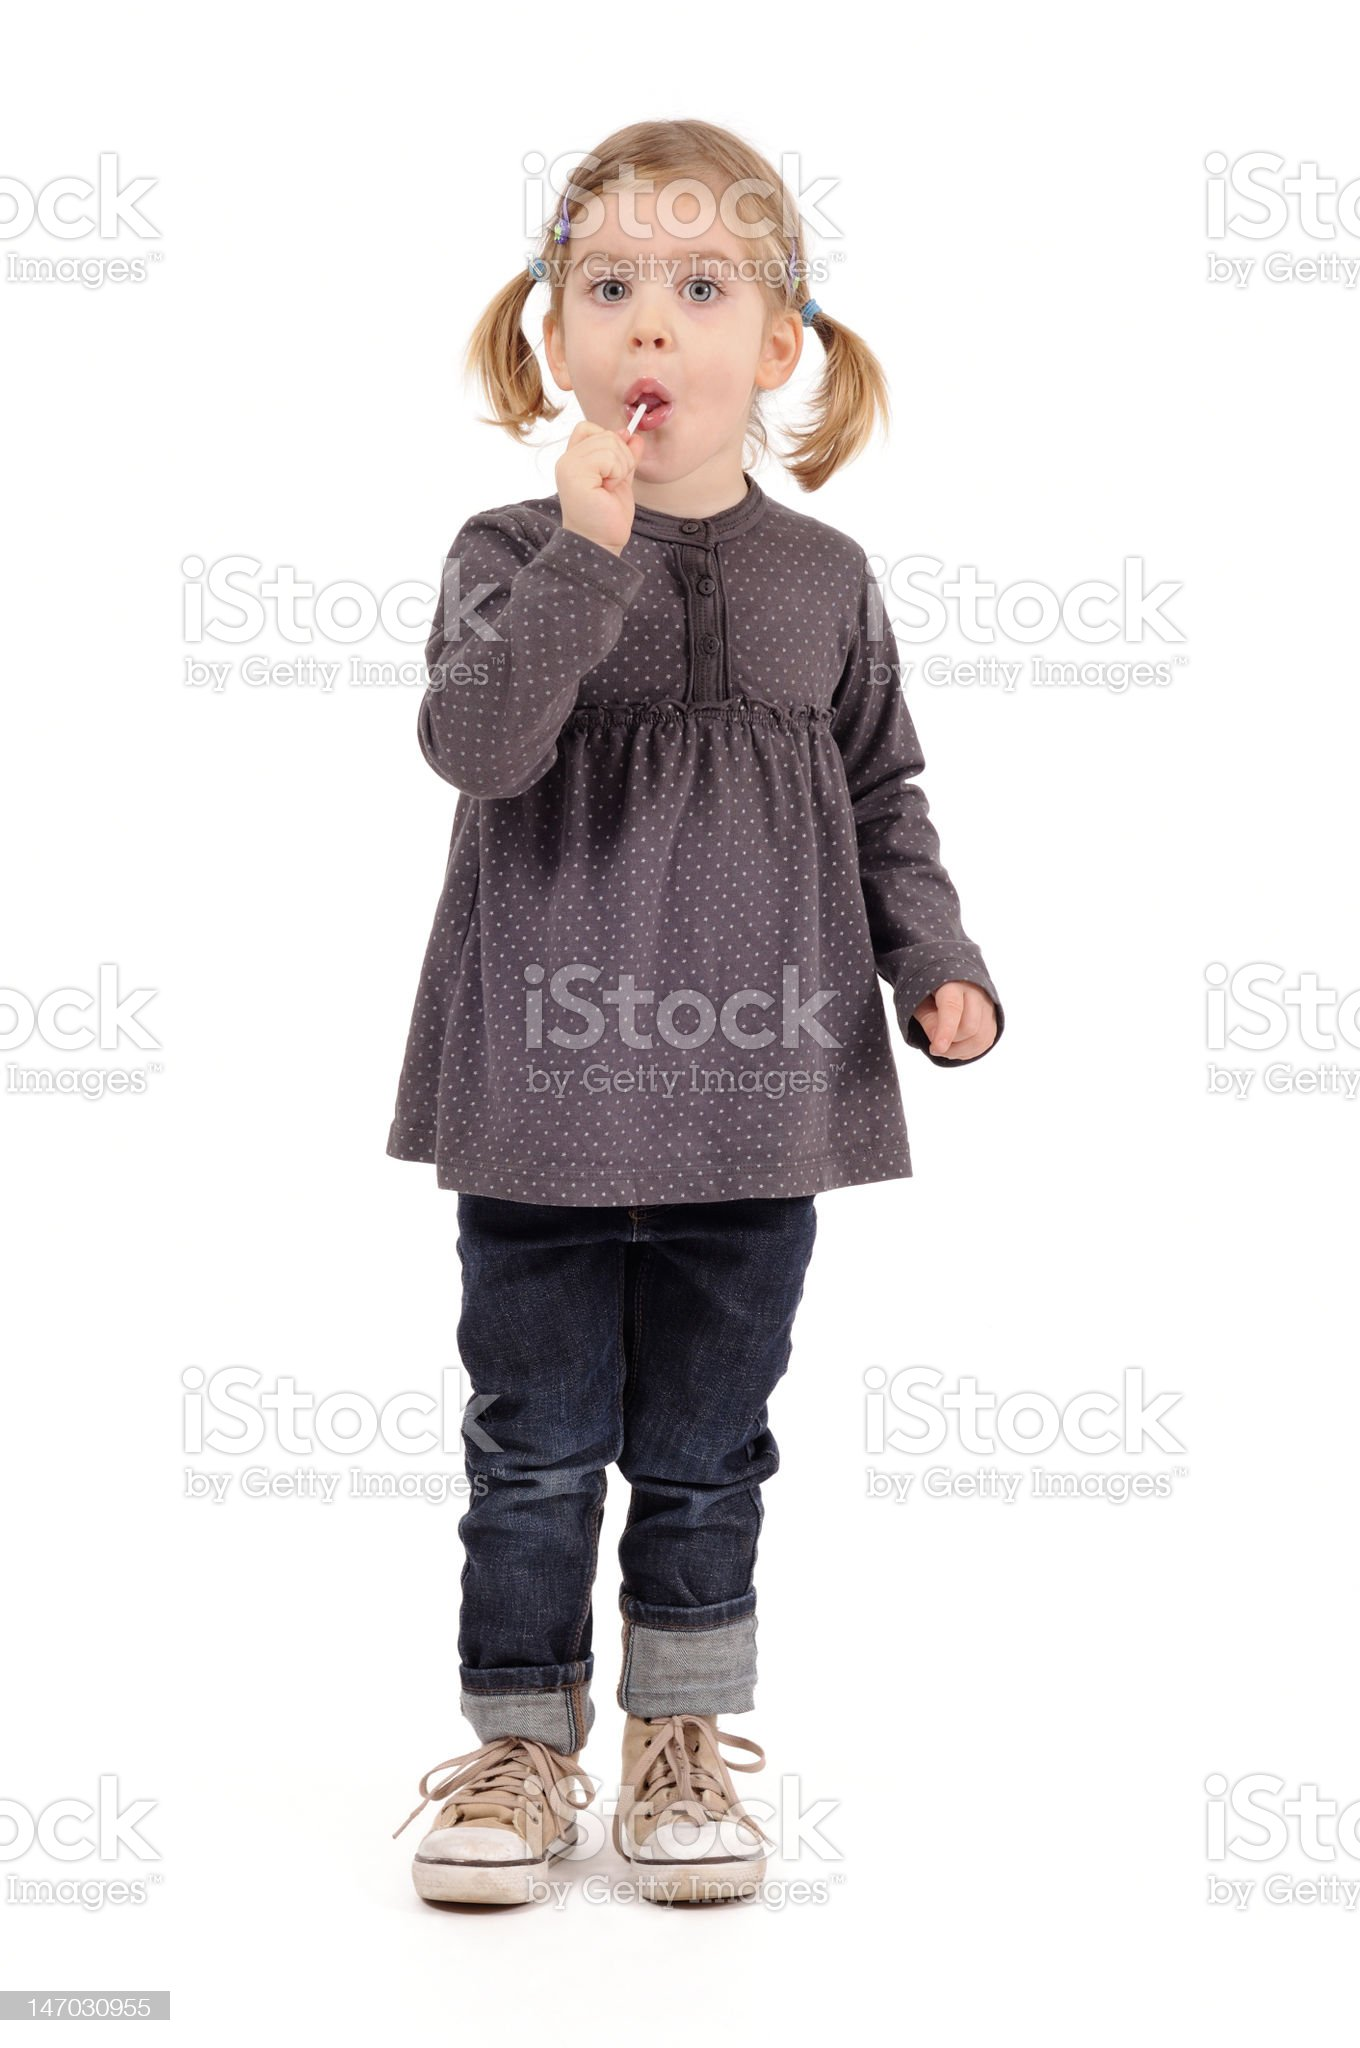 girl pigtails lollipop royalty-free stock photo